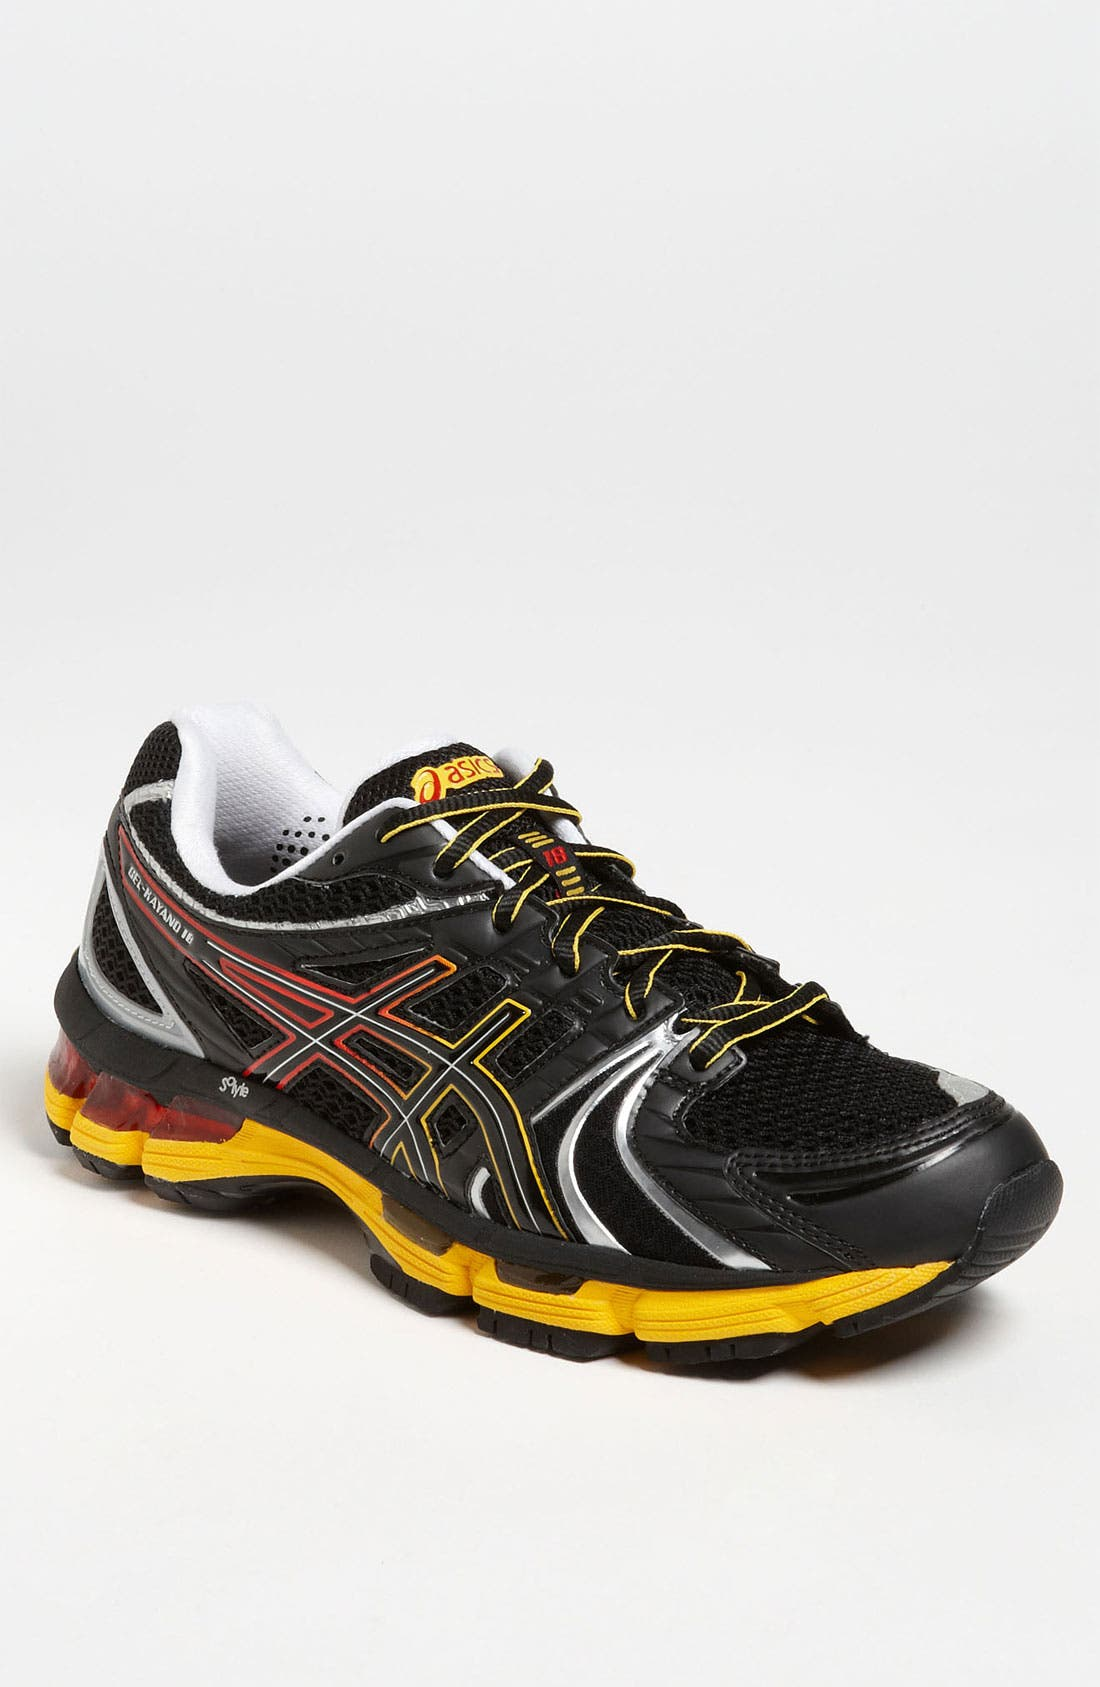 Main Image - ASICS® 'GEL-Kayano® 18' Running Shoe (Men)